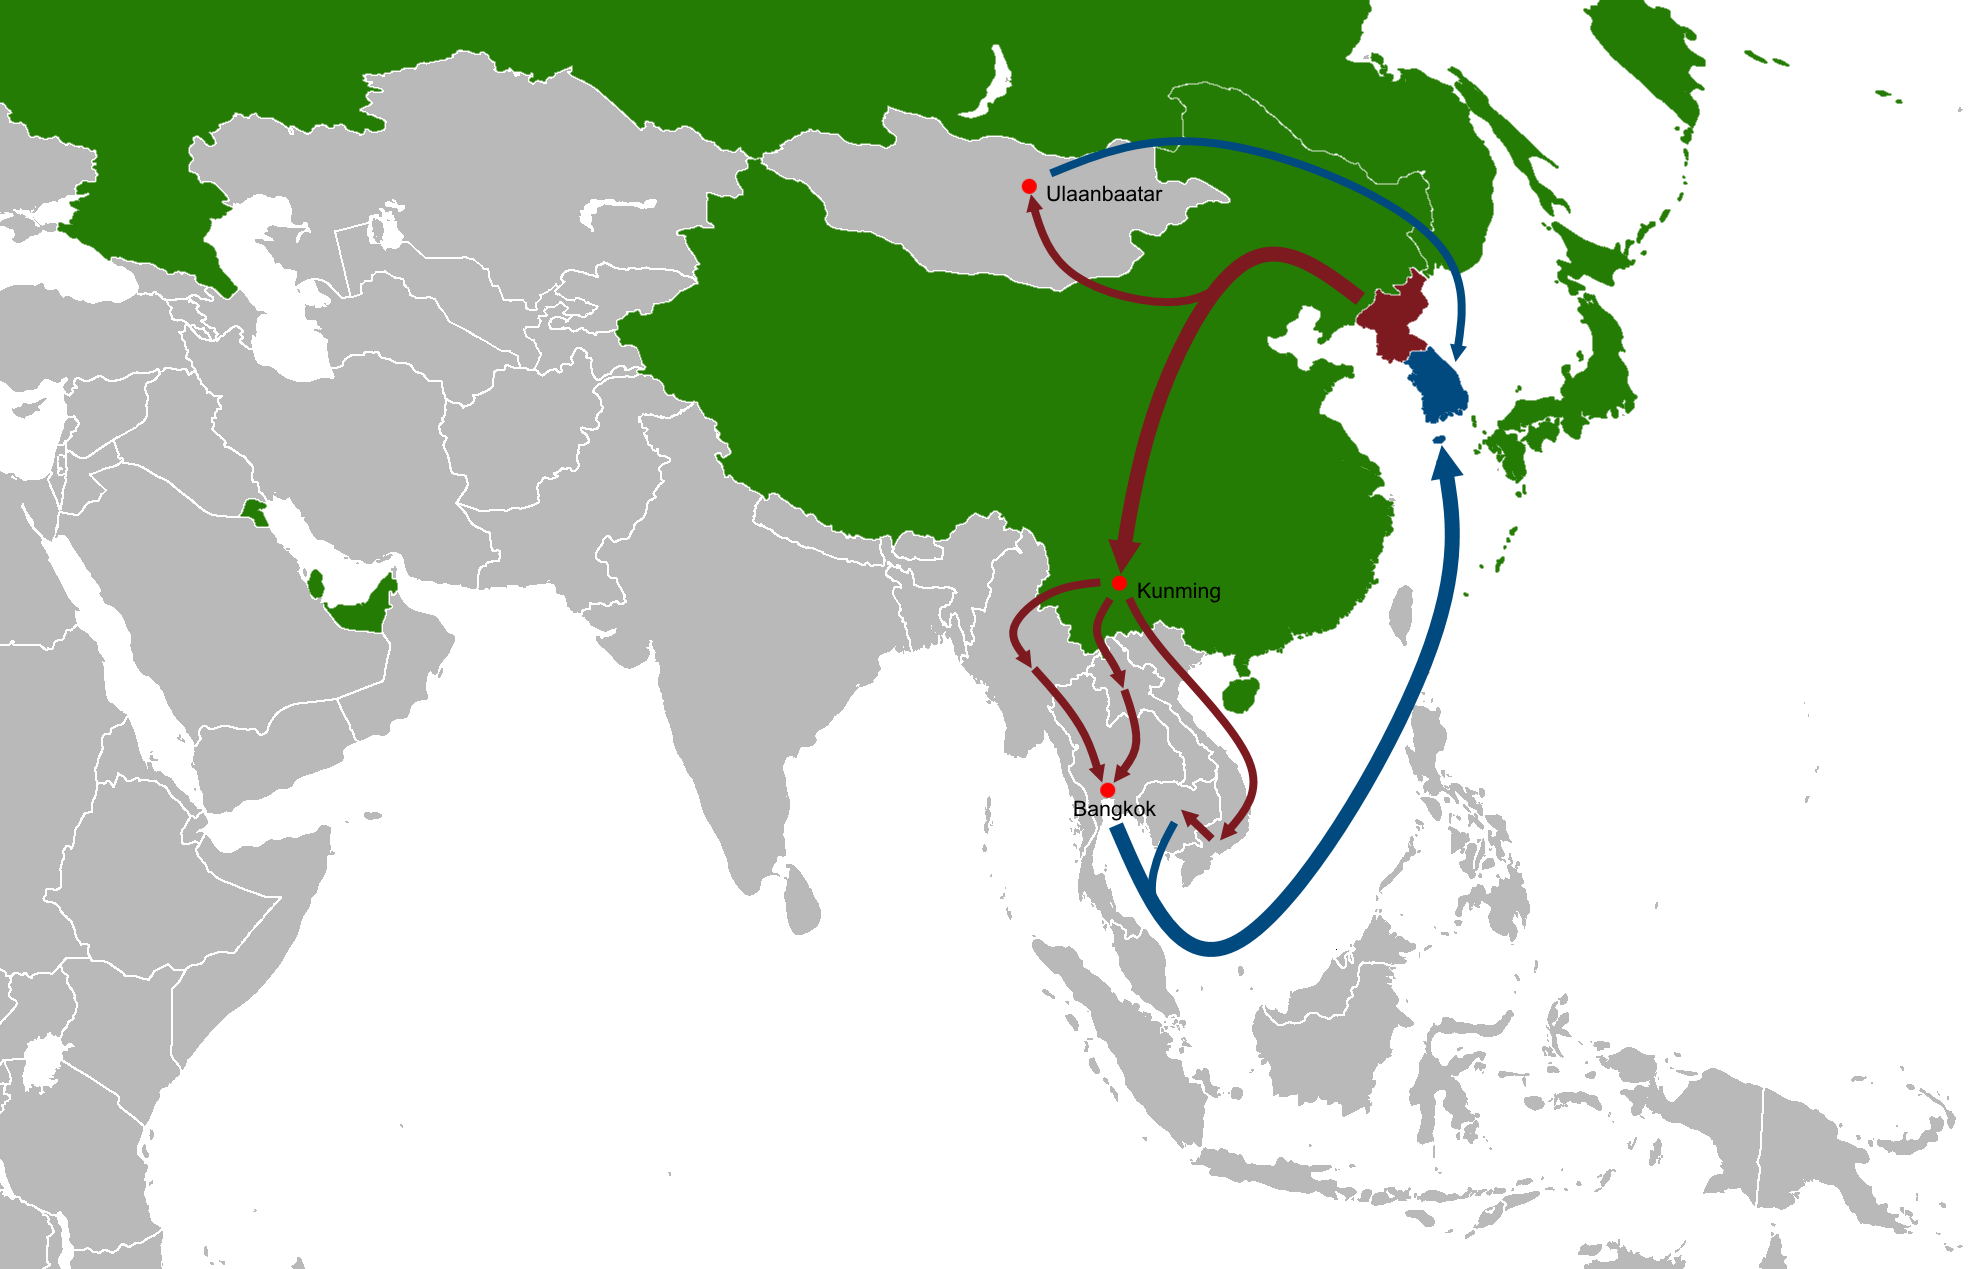 filenorth korean diaspora and defector routes in asia simple mappng